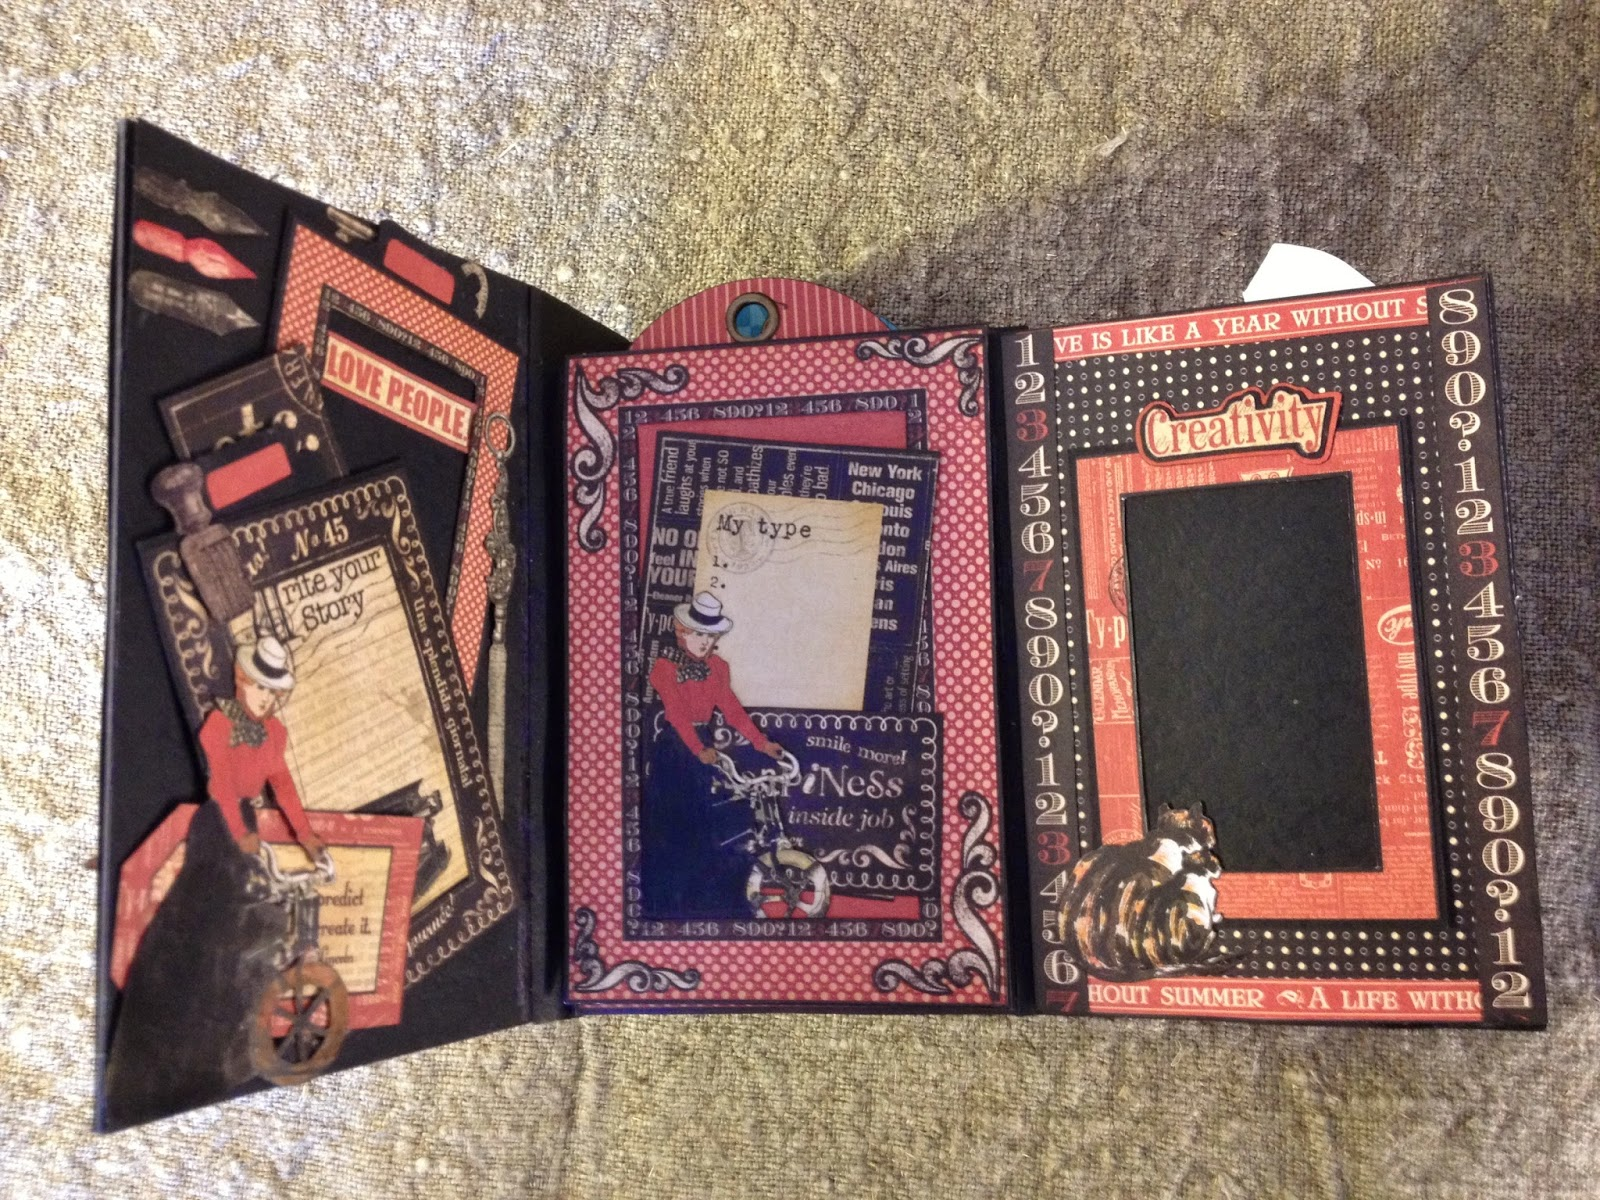 How to make scrapbook vintage - Tried To Make All The Pages Coordinate To Each Other In Color All The Pages Closes With Magnets